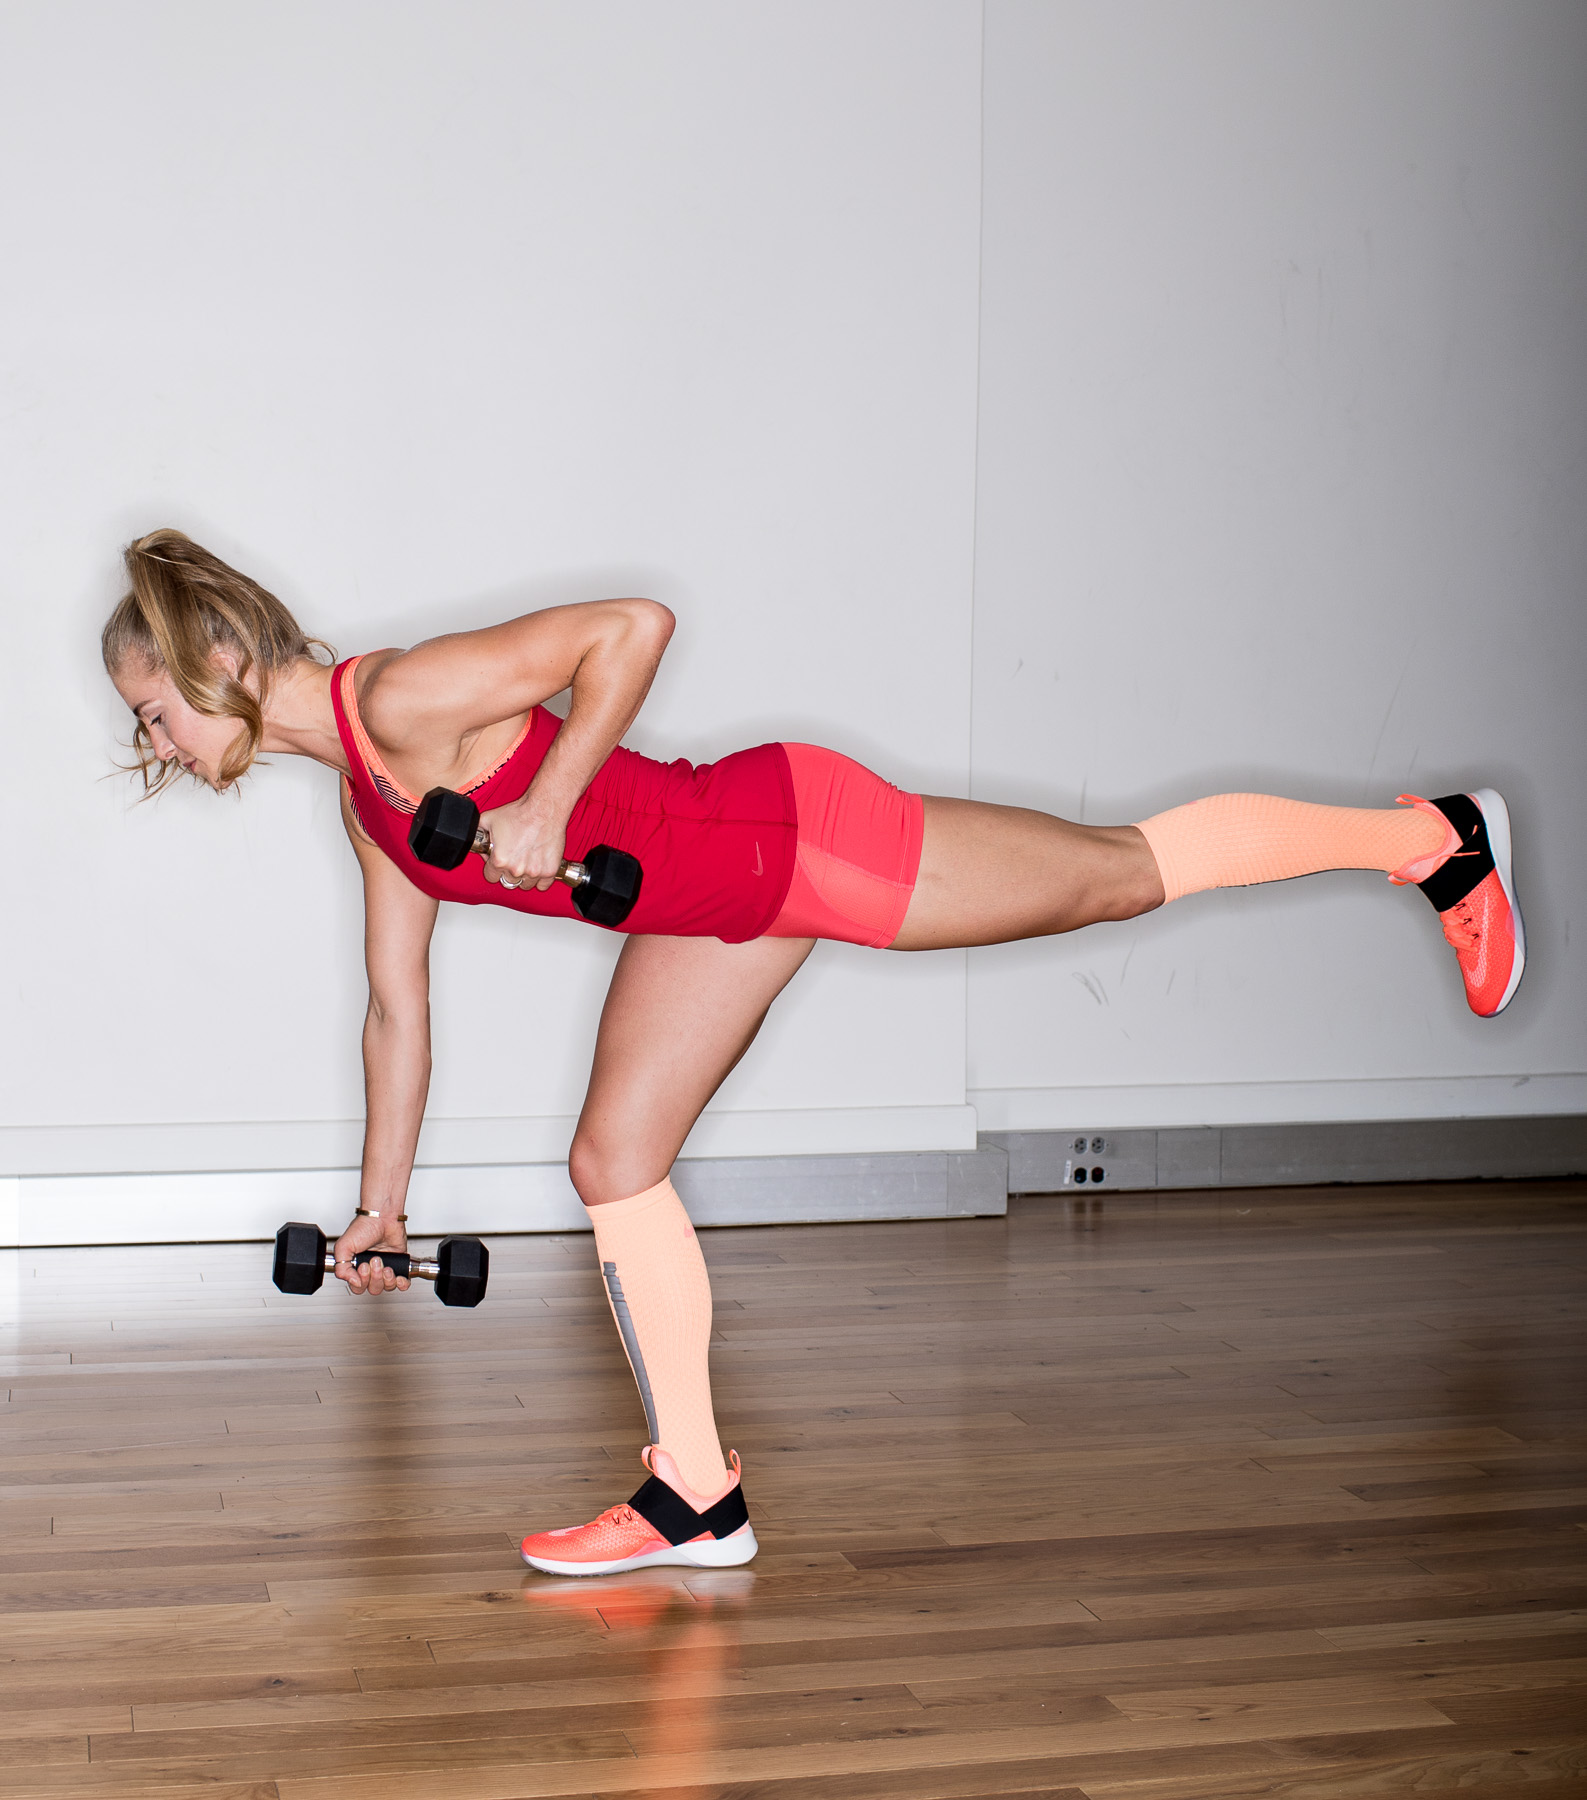 Ashley Barker Photographer Ring Flash Nike Weights Deadlift Single Leg Hardwood Red Peach